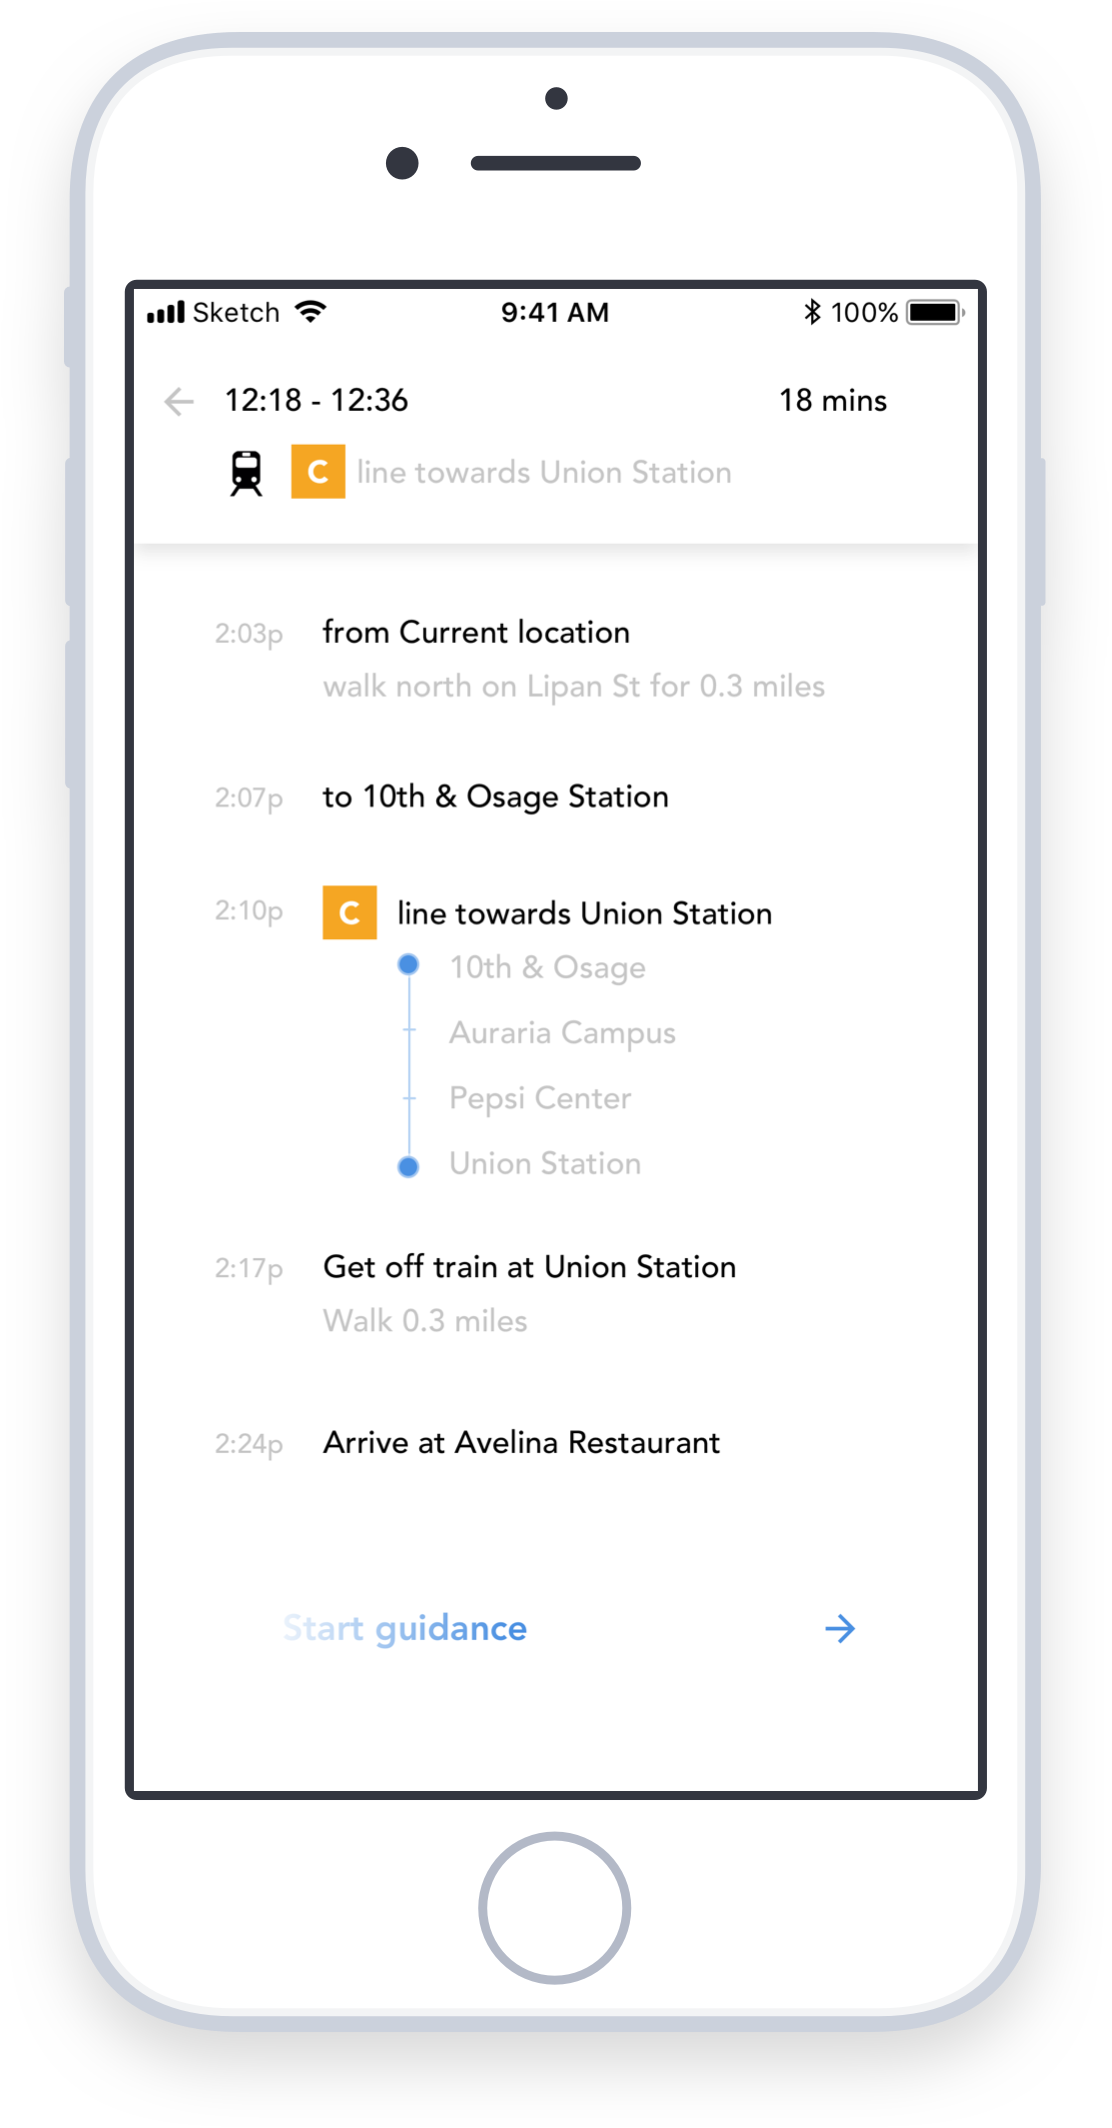 Simple and easy navigation the moment you walk out your door - Routes rarely start and end at transit hubs. Therefore, RTD Beacon doesn't just show the journey on public transit—it helps guide users from wherever they are all the way to their final destination is.